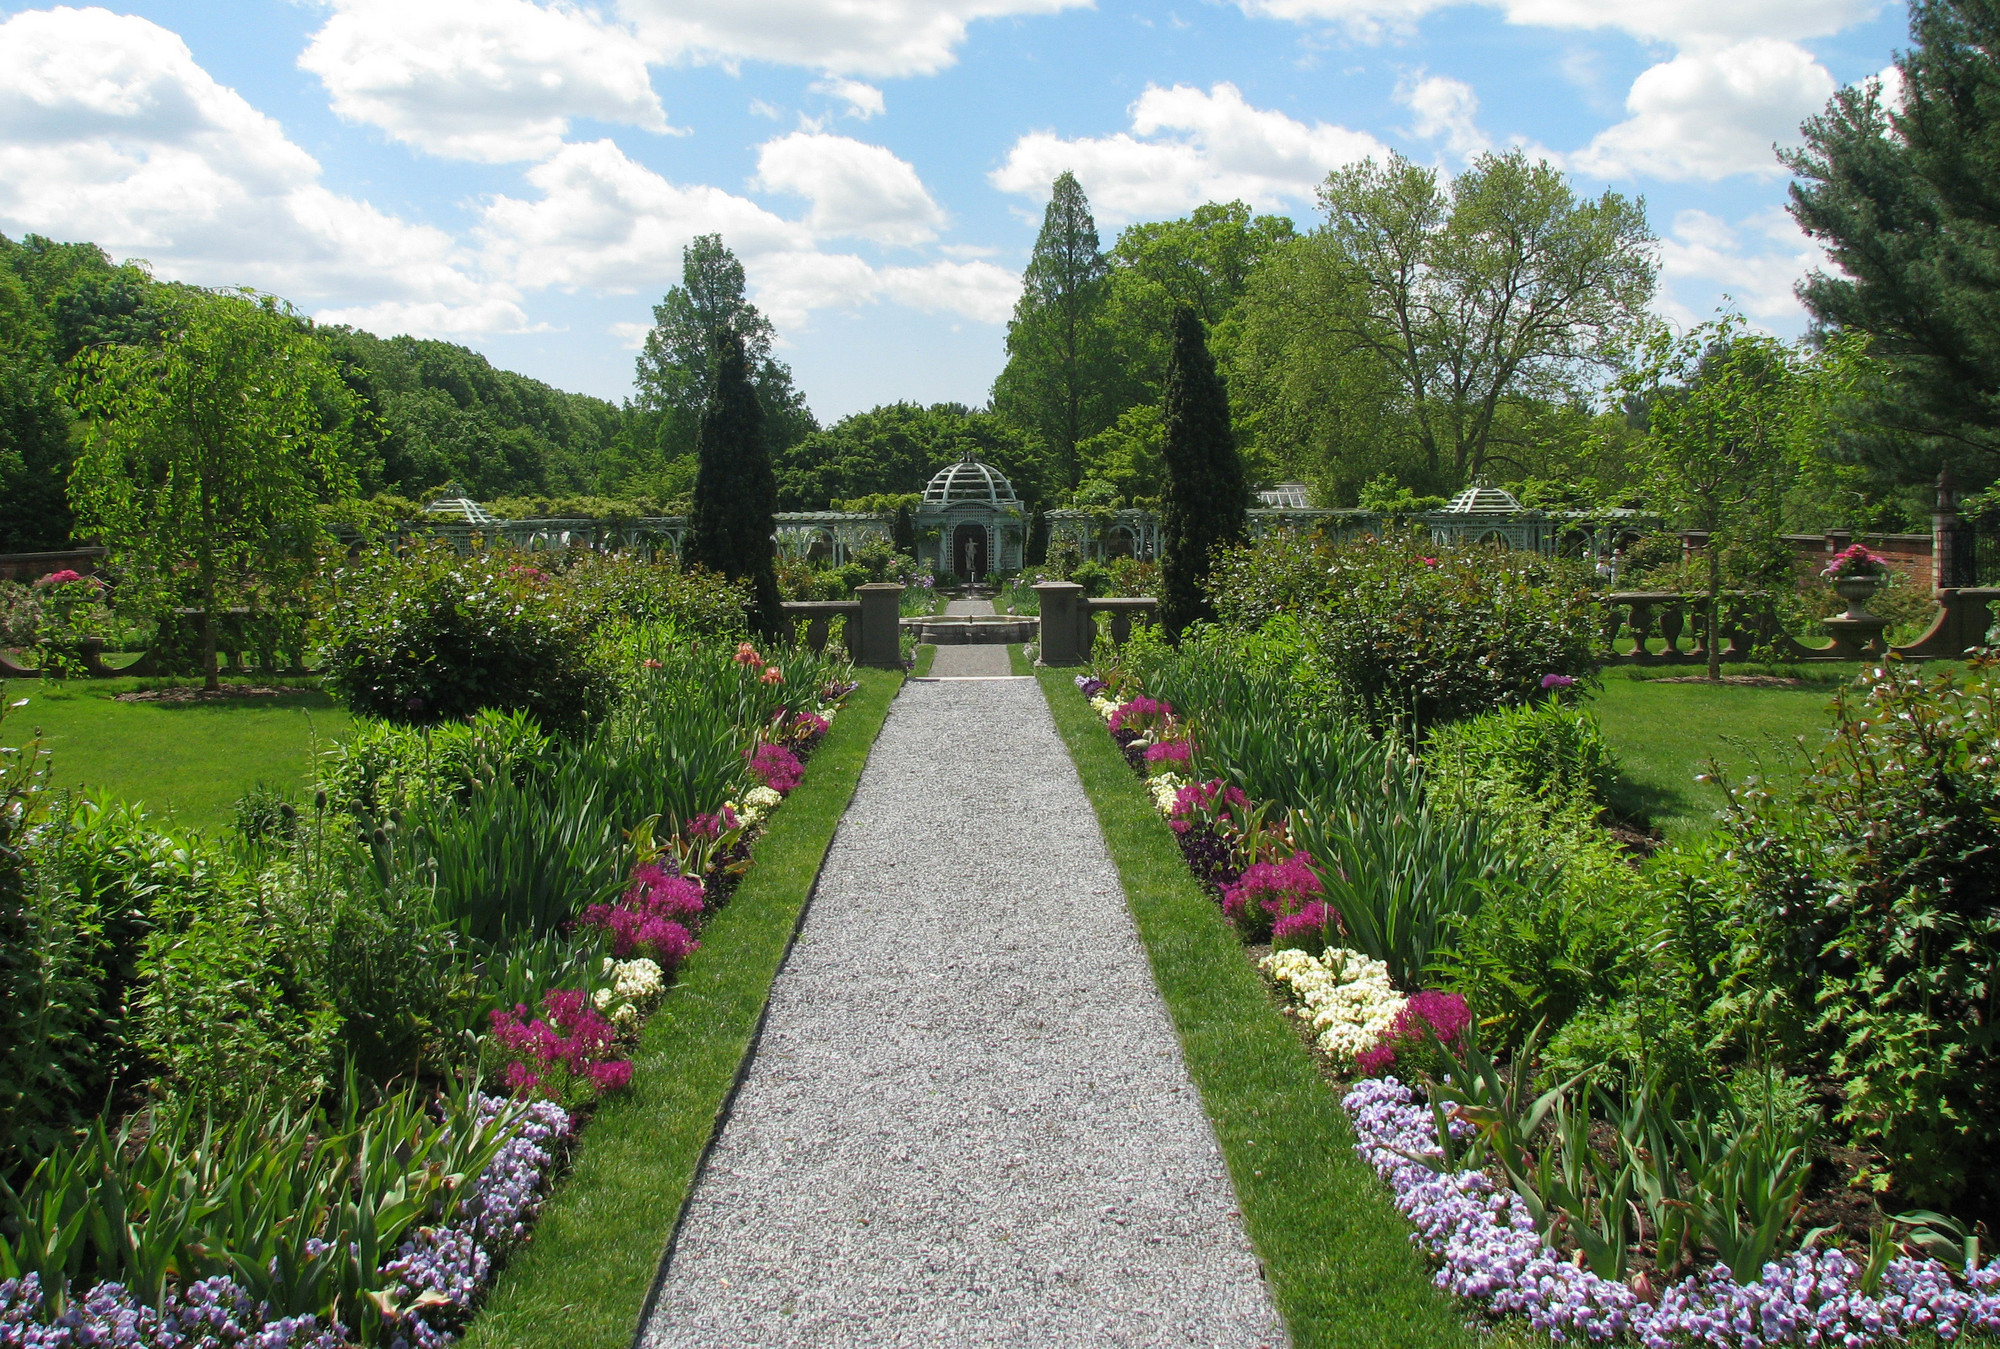 Old Westbury Gardens' Walled Garden is a popular destination for Moms this weekend.